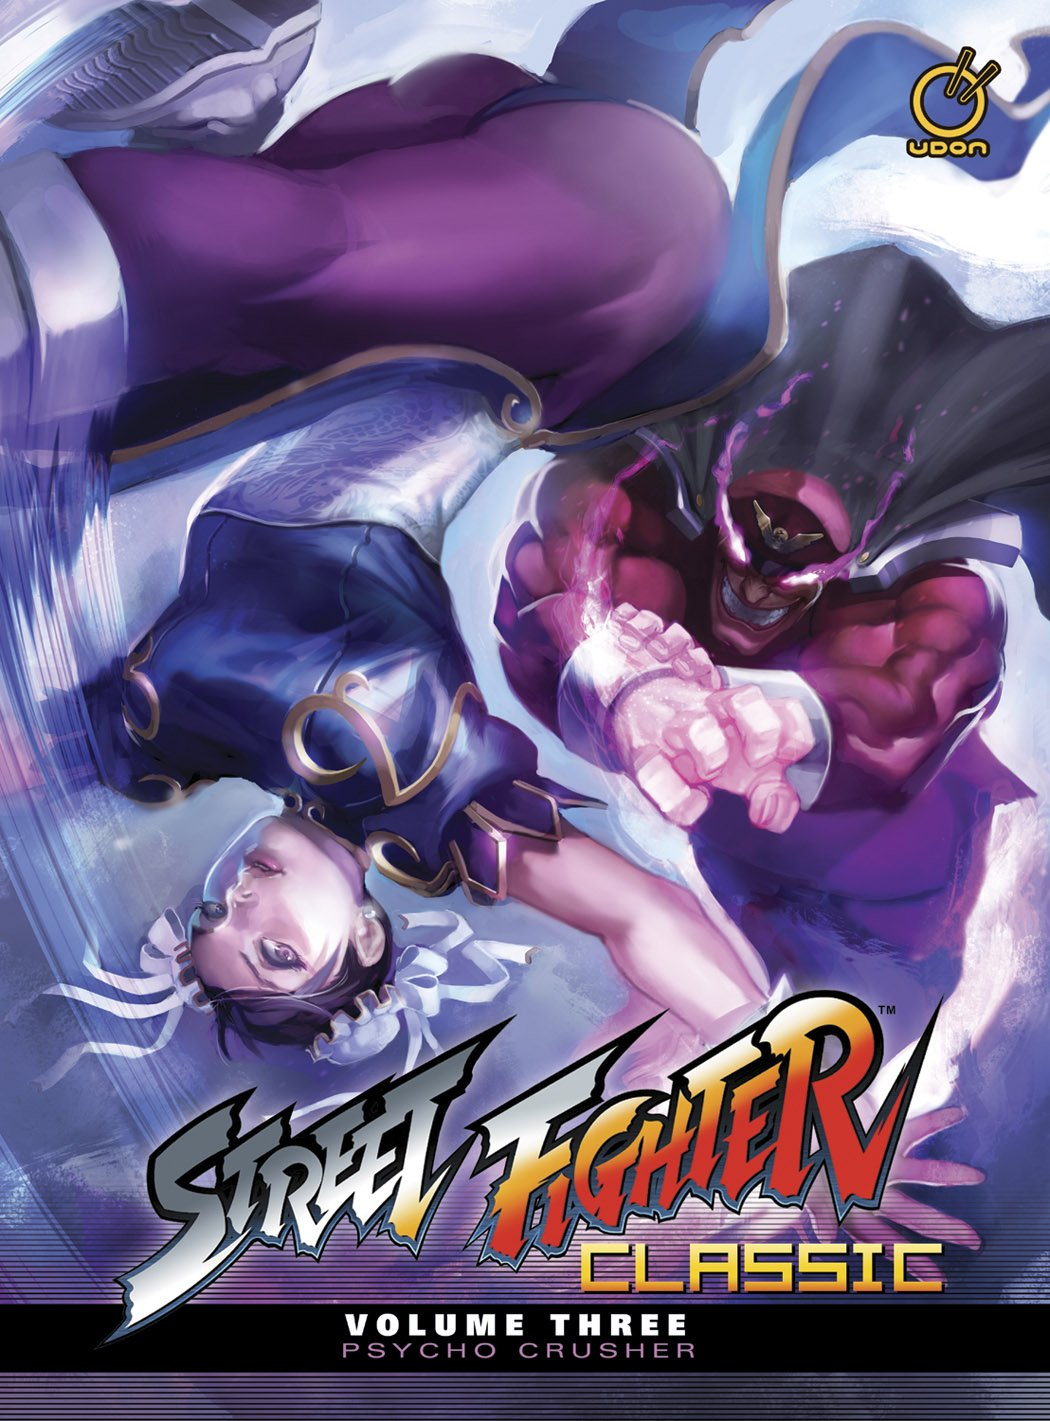 Street Fighter Classic Vol.3 Psycho Crusher